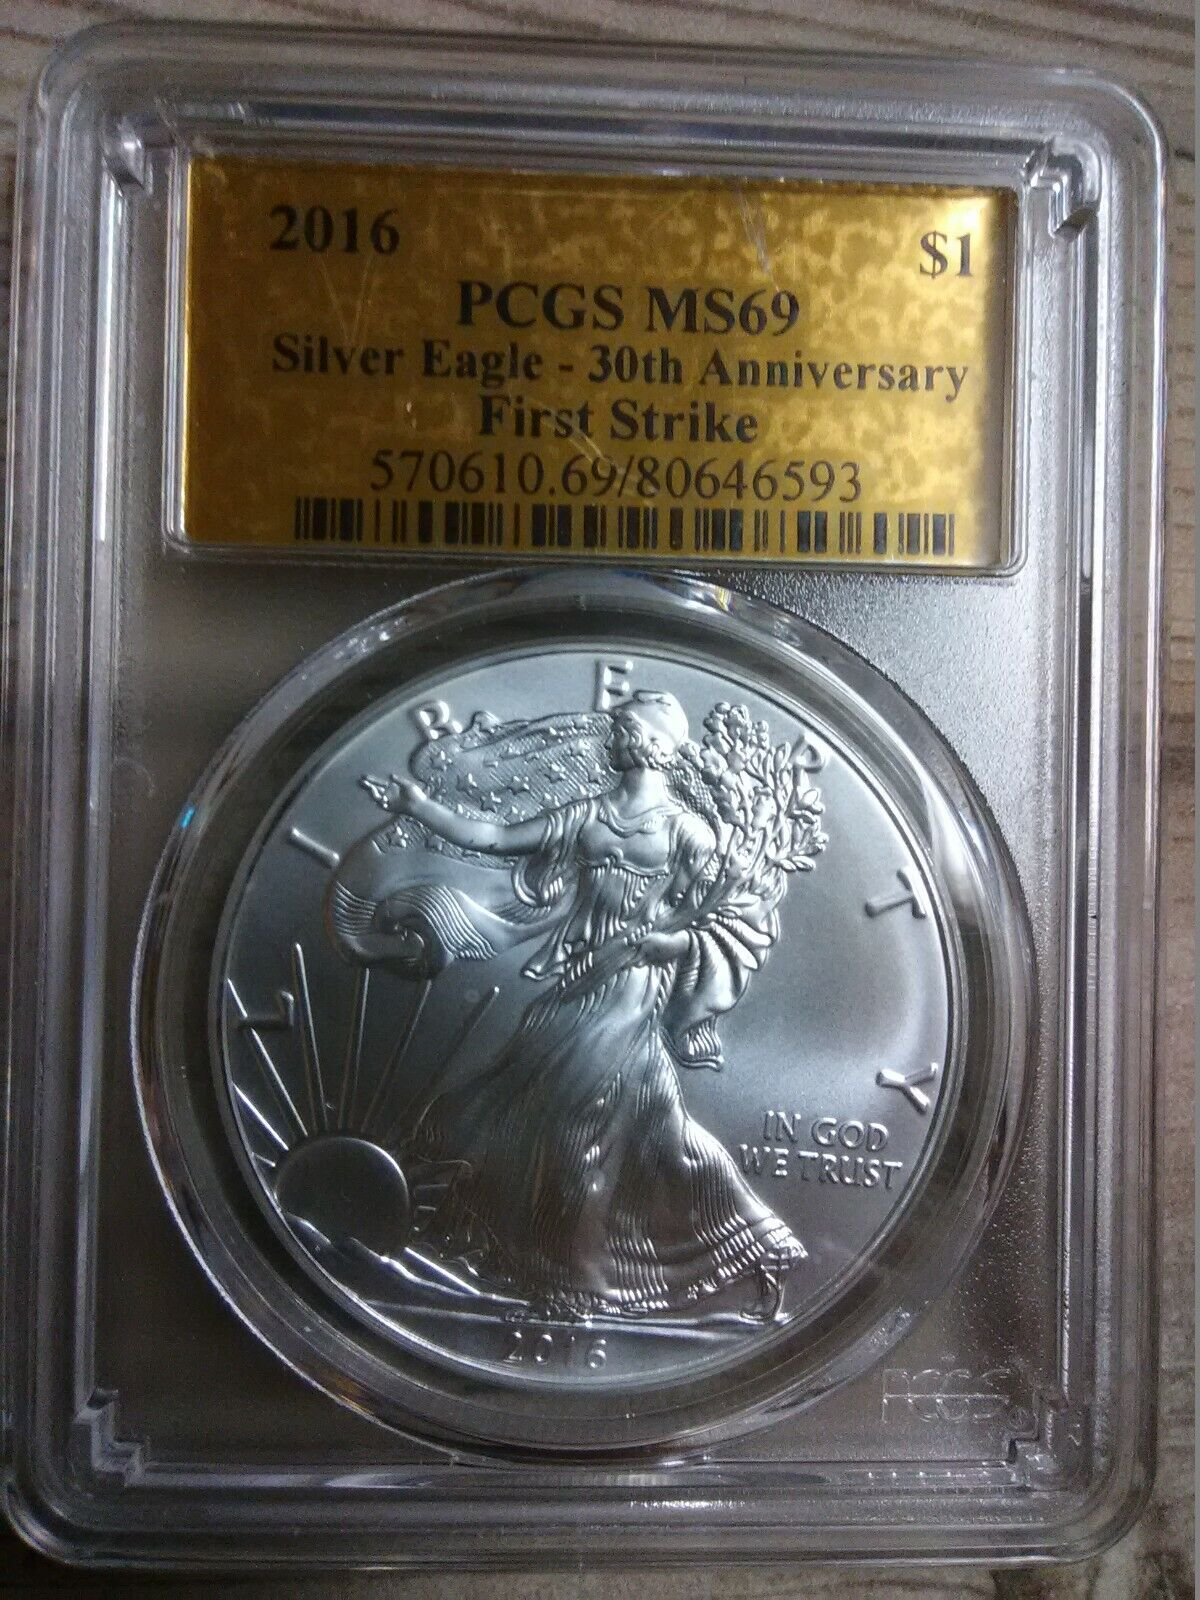 2016 PCGS MS69 Silver Eagle First Strike Gold Foil Label 30th Anniversary - $54.00